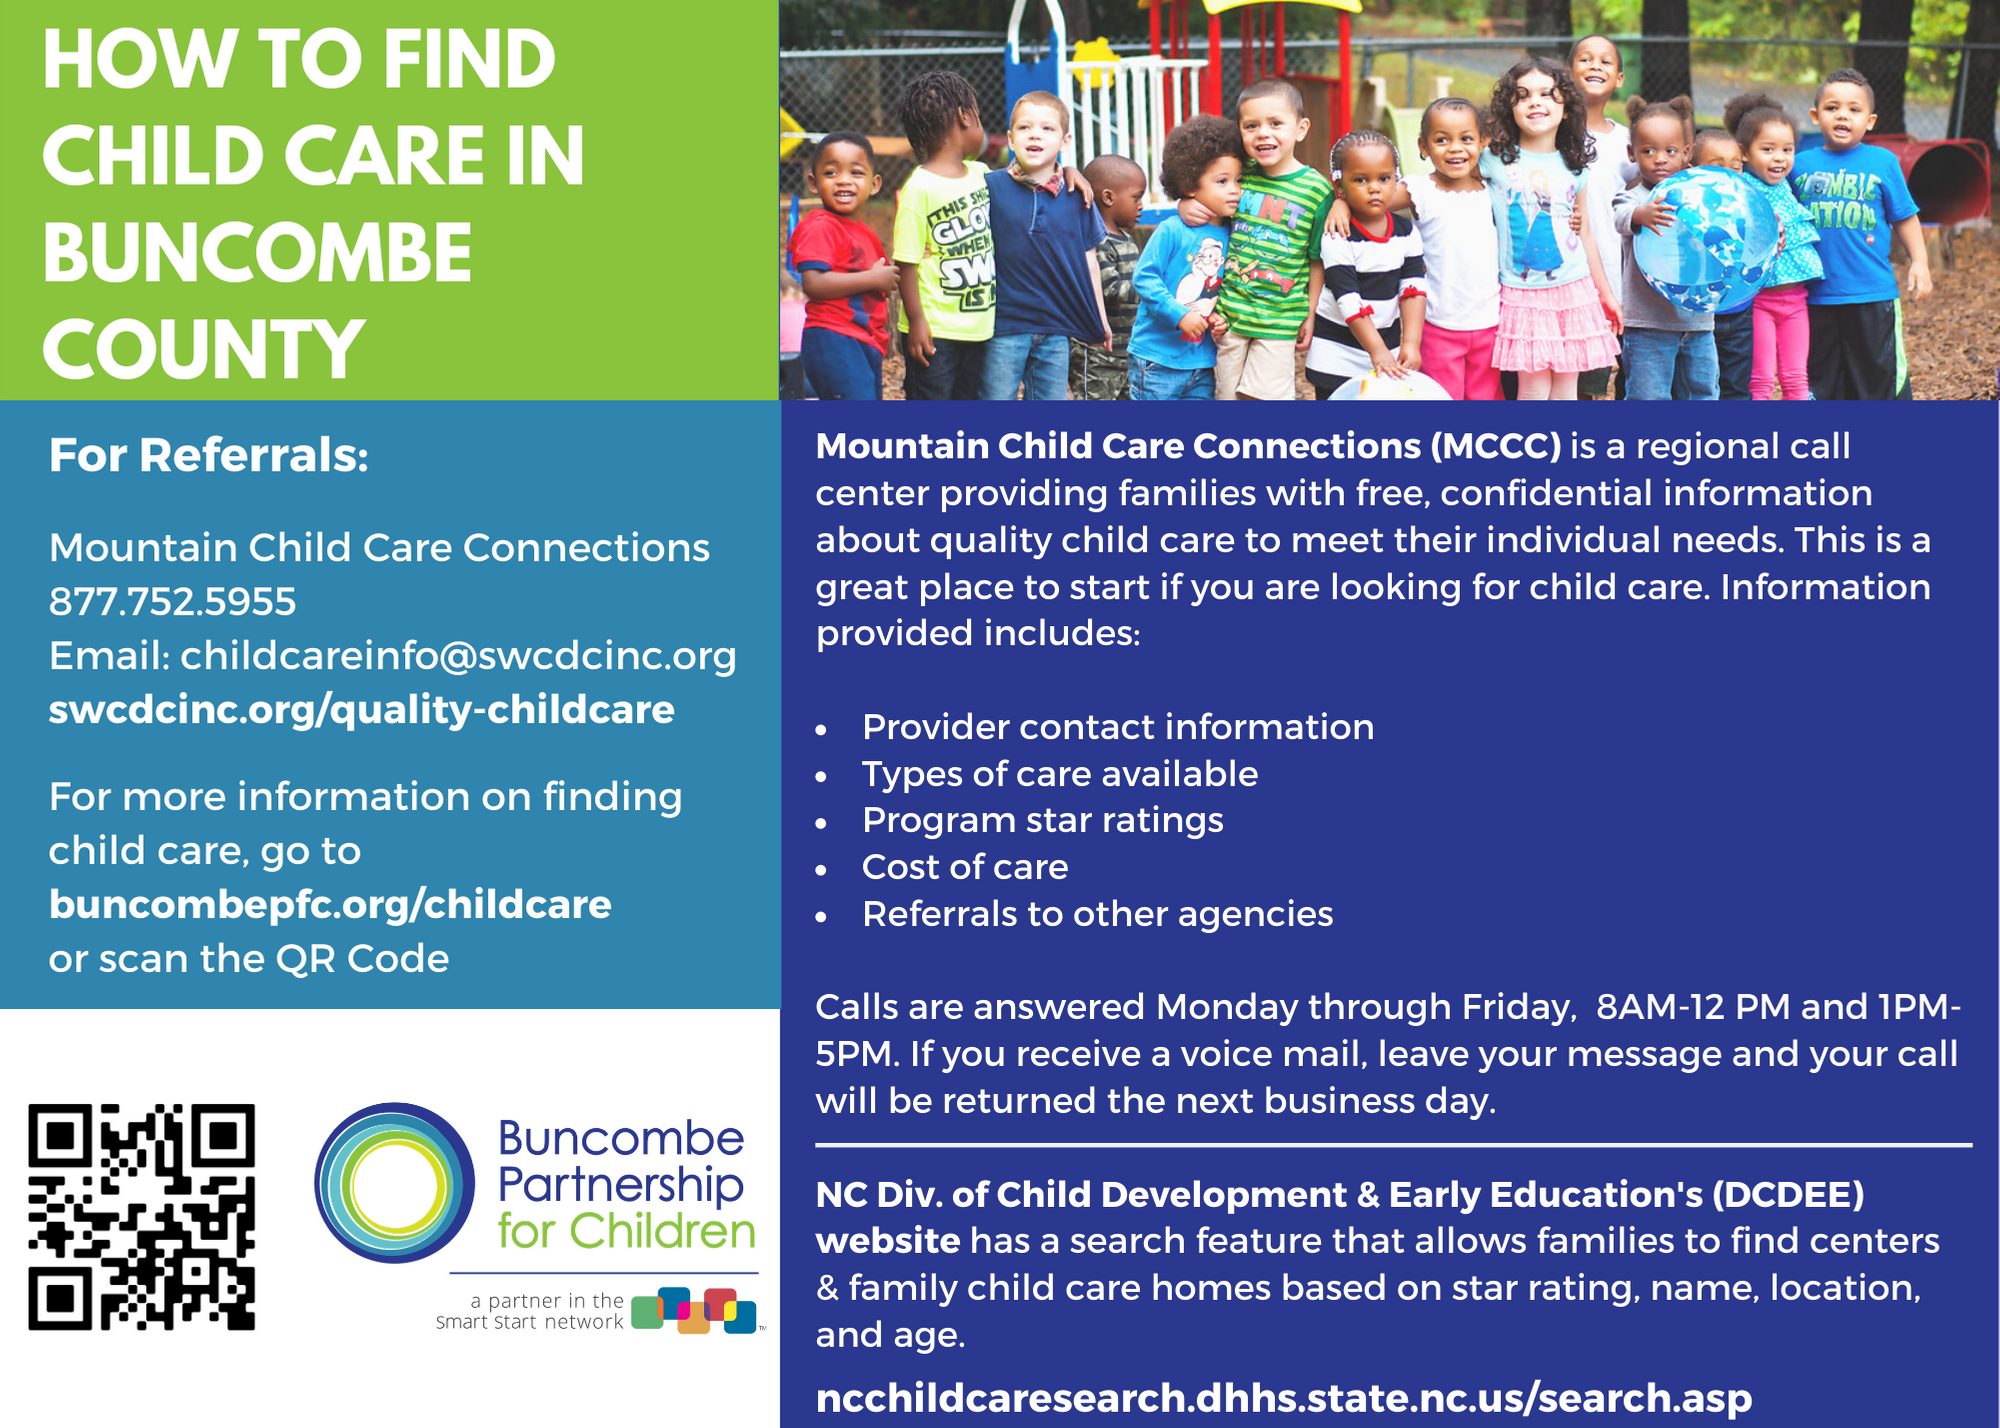 Image that talks about how to find child care in Buncombe County